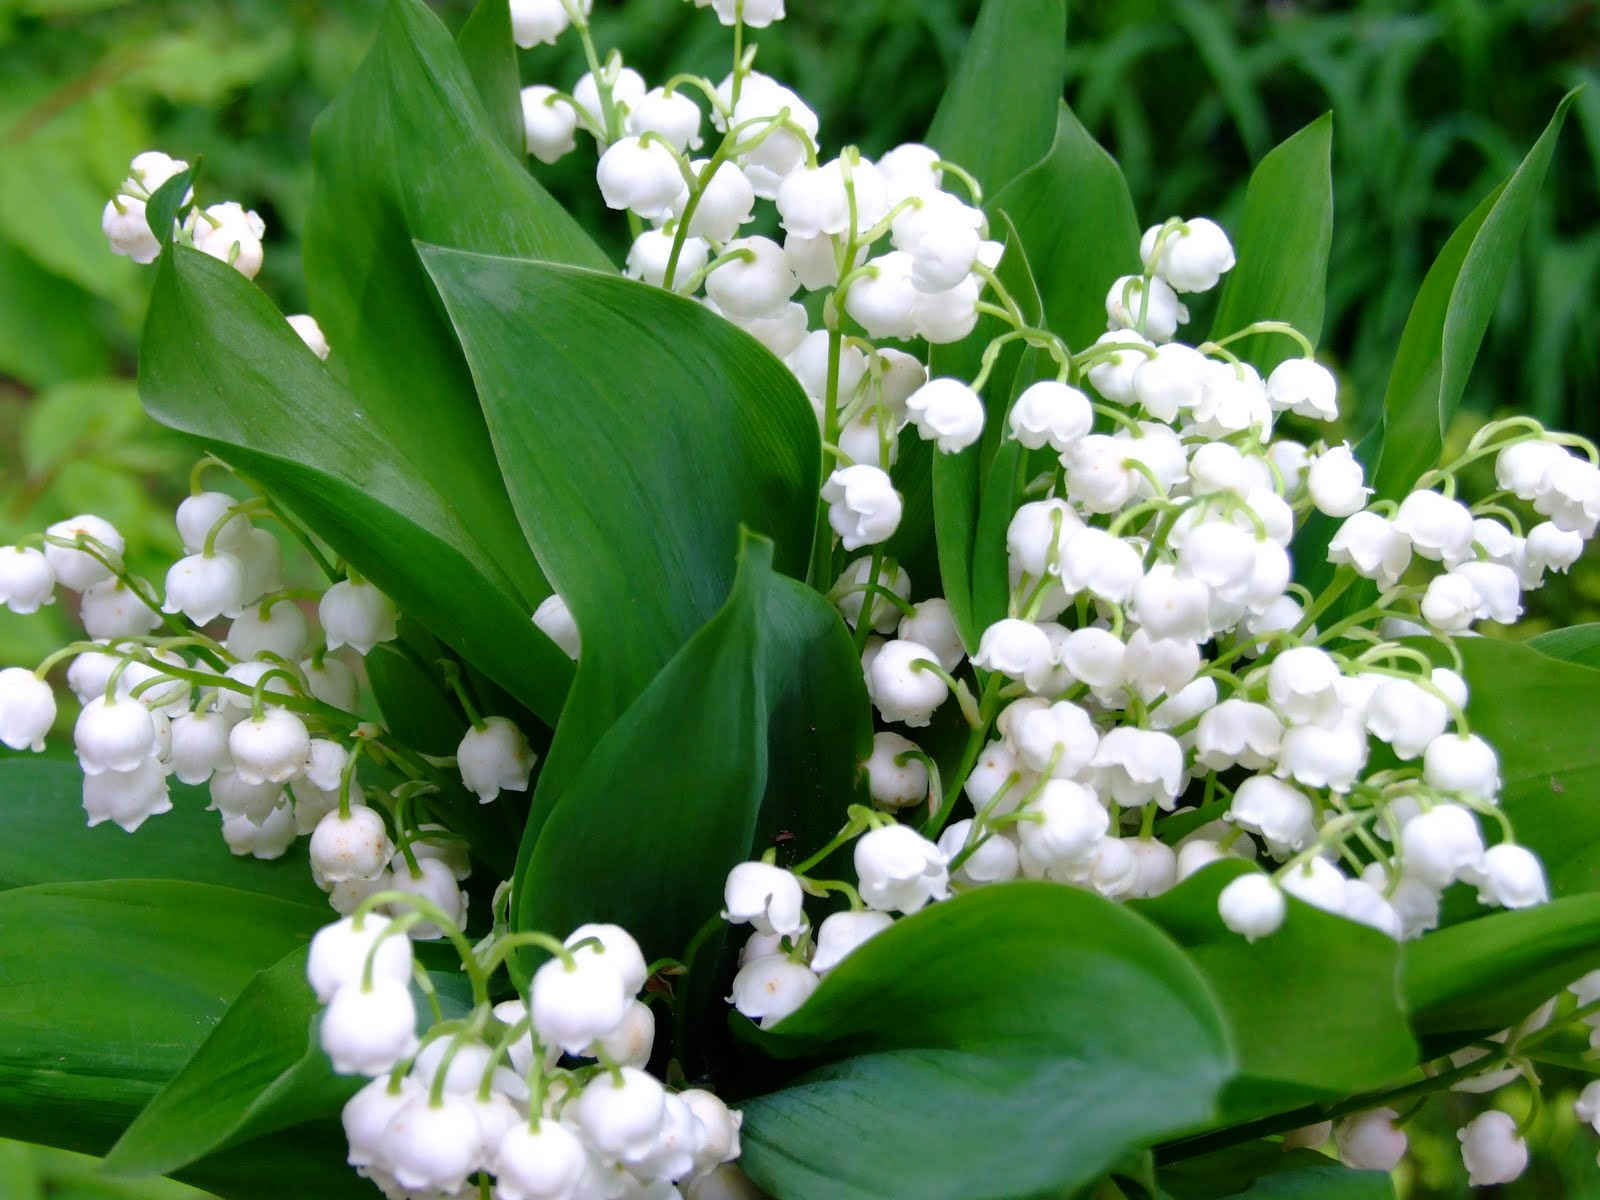 Lily Of The Valley Bouquet 636.7 Kb